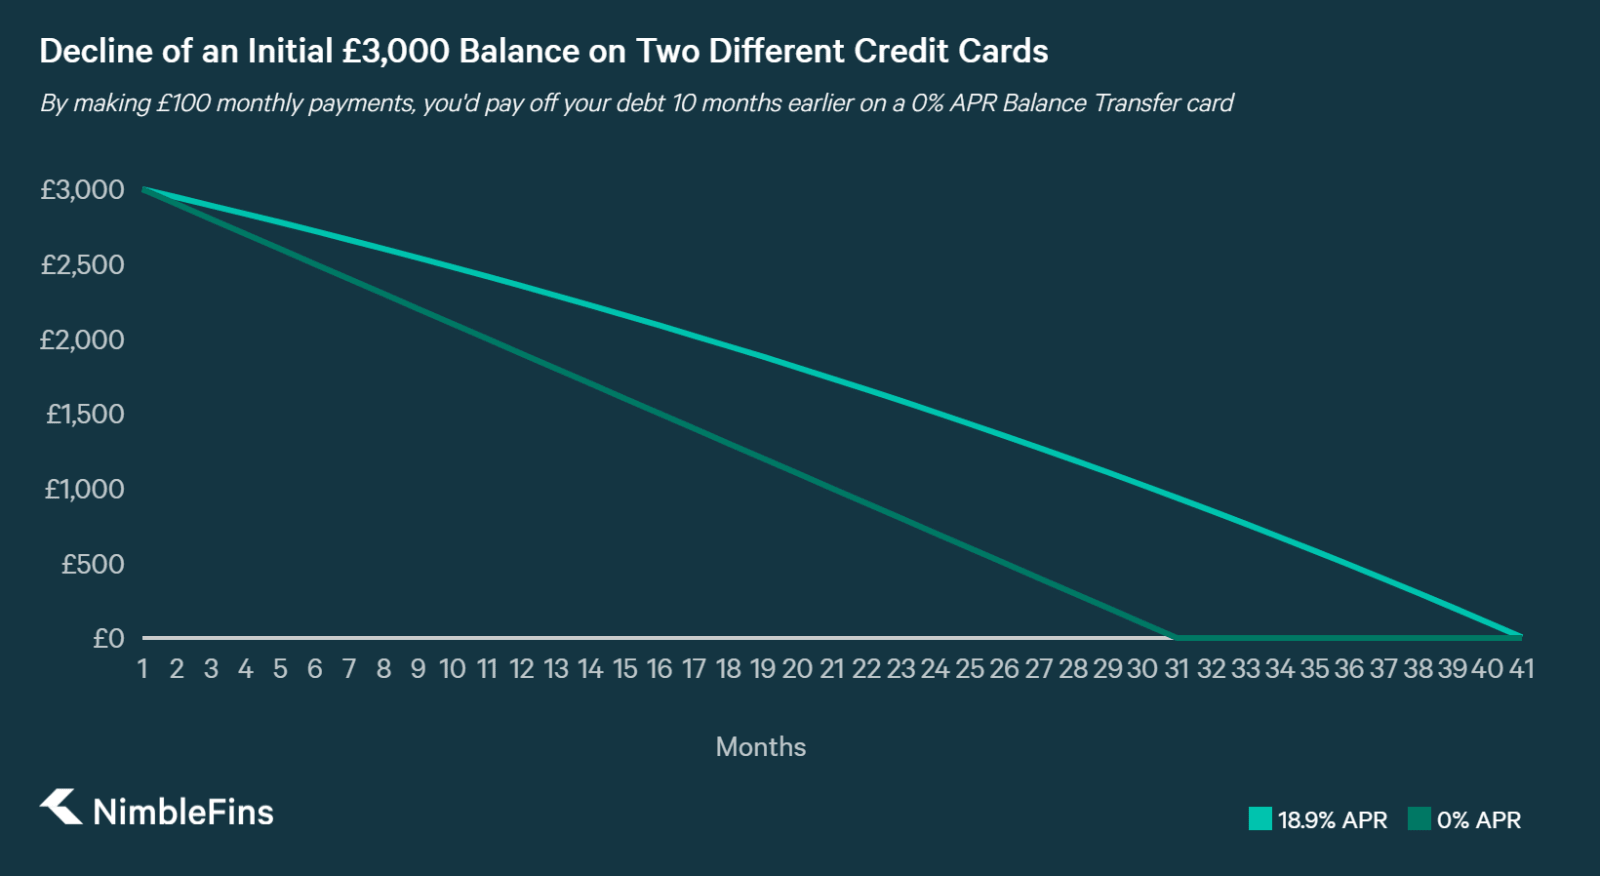 A graph showing the reduction in  Debt in paying down a £3,000 Balance on Two Credit Cards with Different Interest Rates